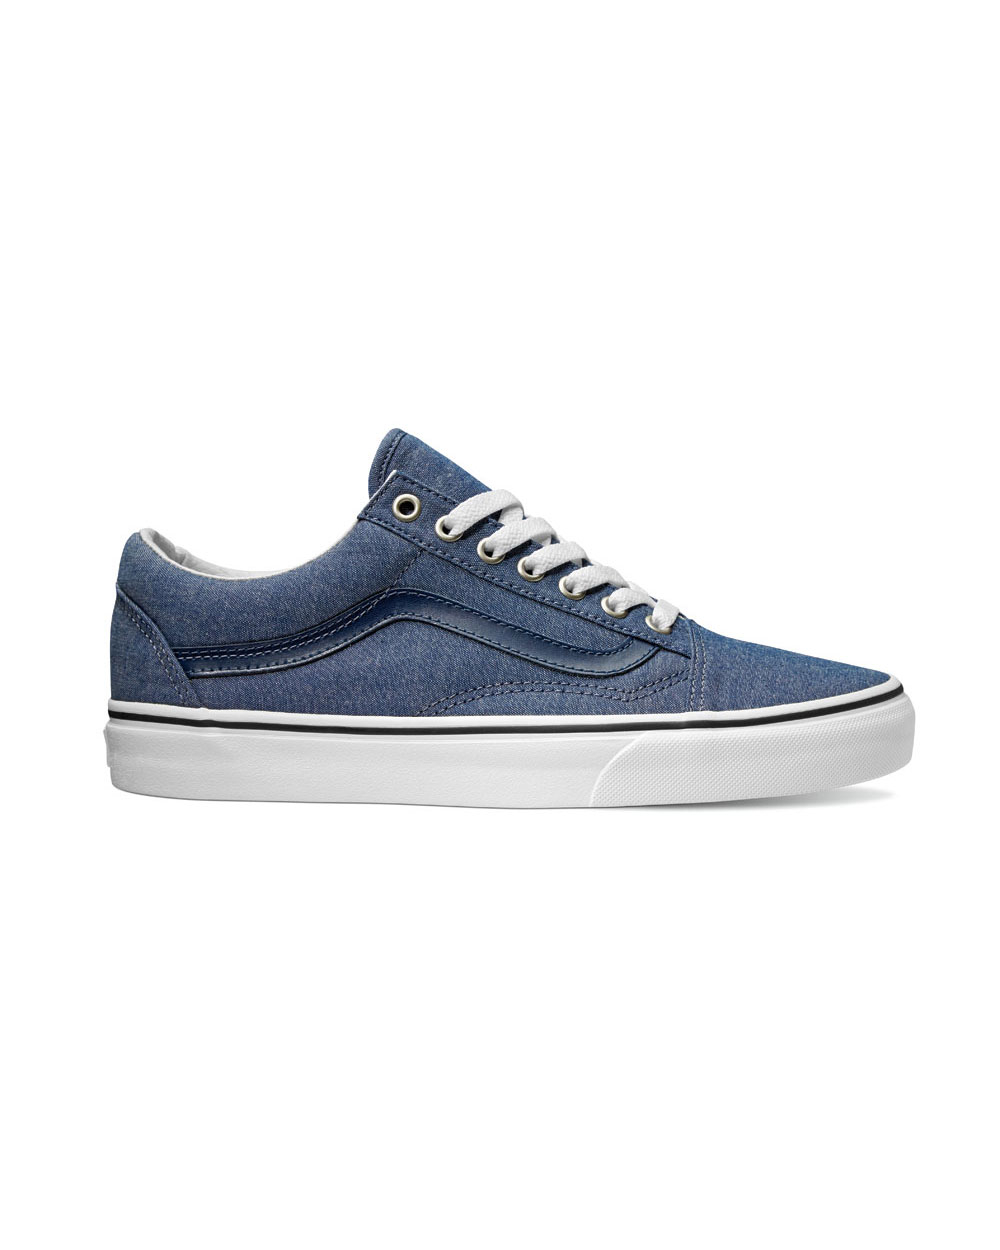 Vans Old Skool C&L (chambray/blue)